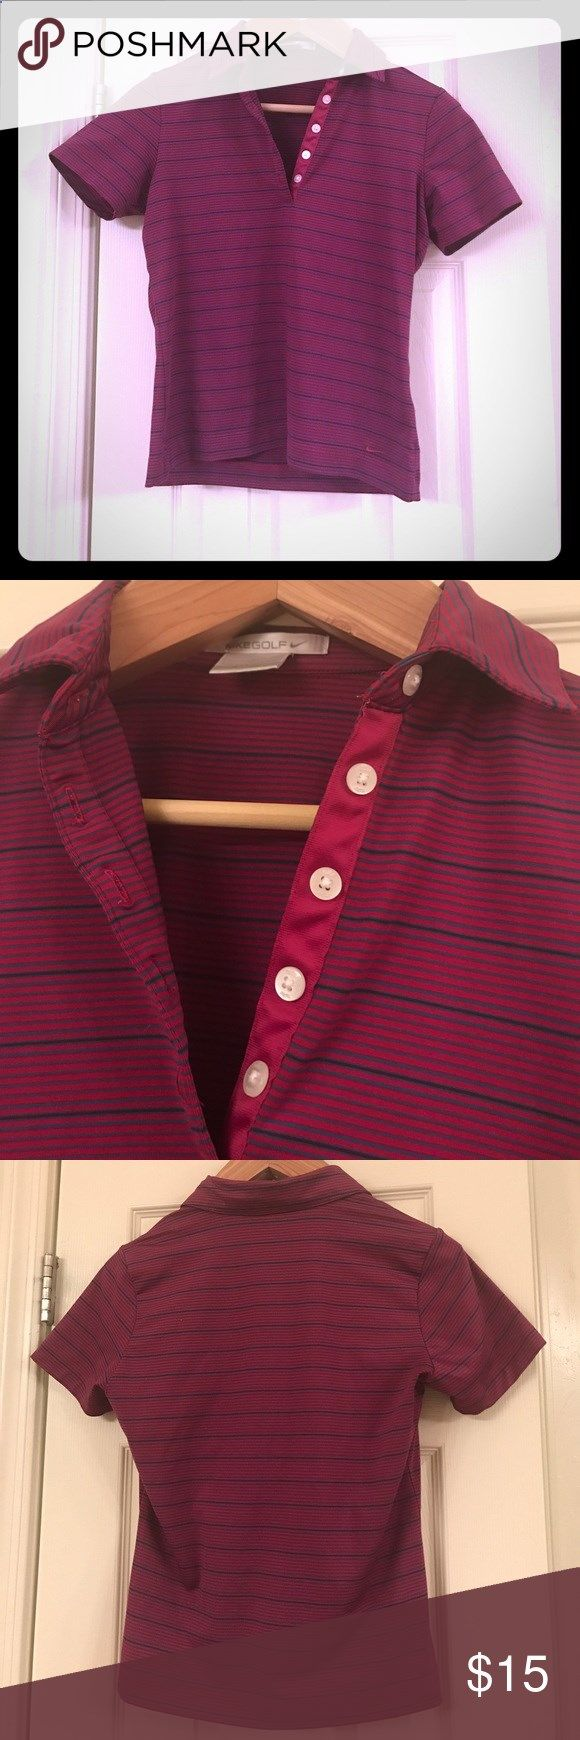 Nike striped golf shirt Nike FitDry Golf Shirt. Super cute in great condition Nike Tops Tees - Short Sleeve